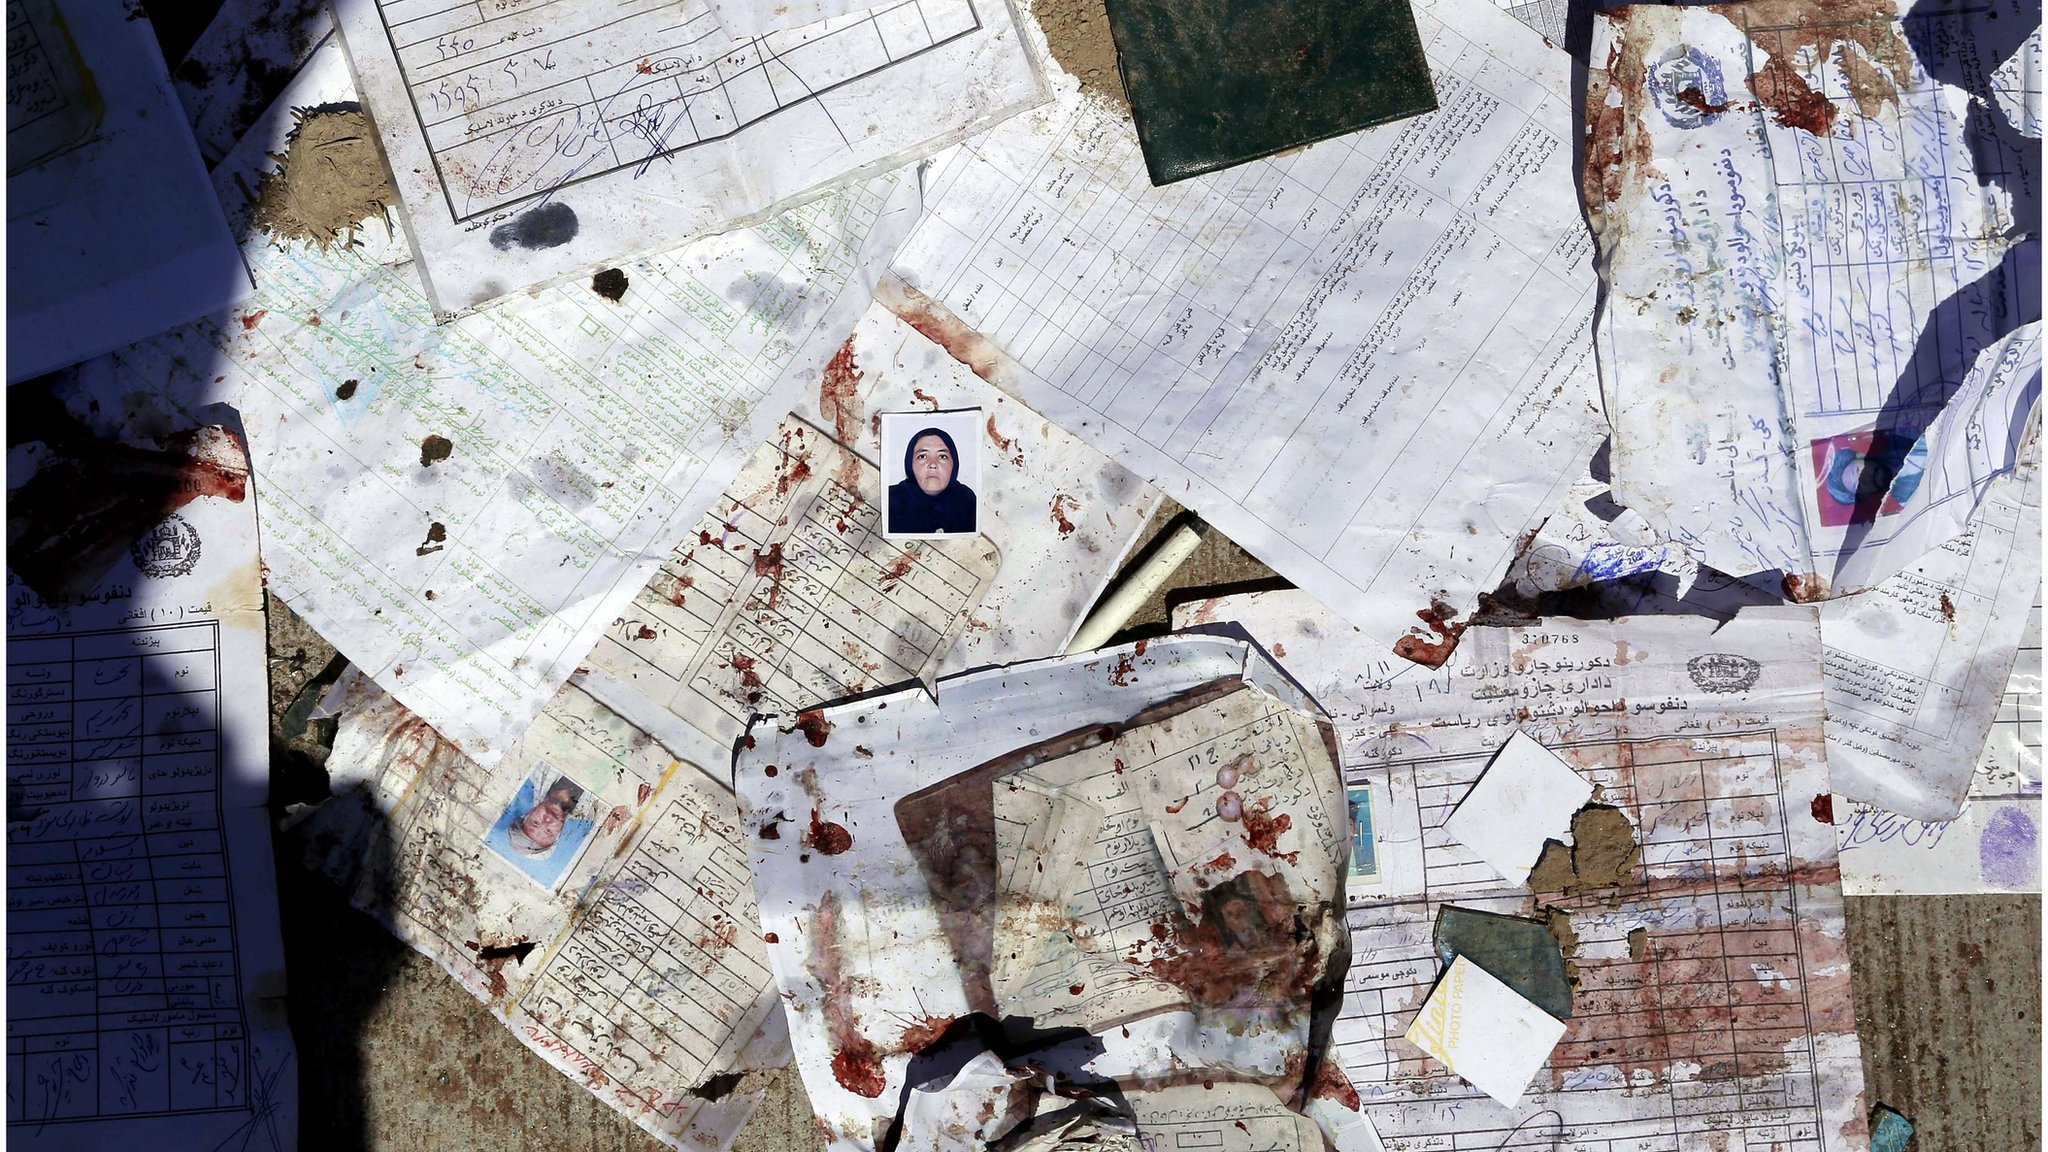 Blood stained voters' registration papers are seen on the ground at the scene of a suicide bomb attack that targeted a voter registration centre in Kabul, Afghanistan, 22 April 2018